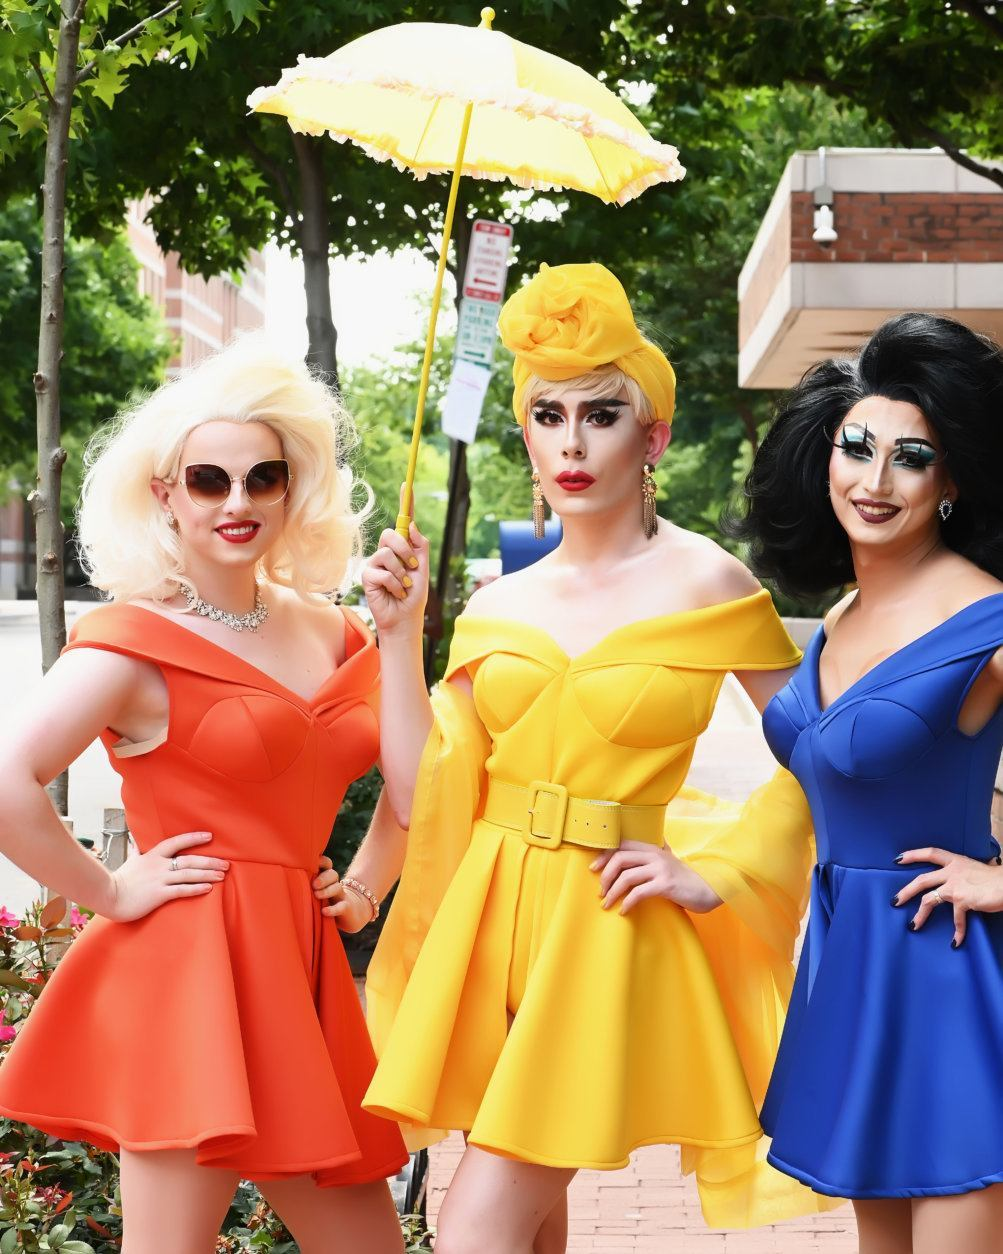 Dreama, Citrine and Logan Stone of The Haus of Stone at the 2019 Capital Pride Parade. (Courtesy Shannon Finney Photography)